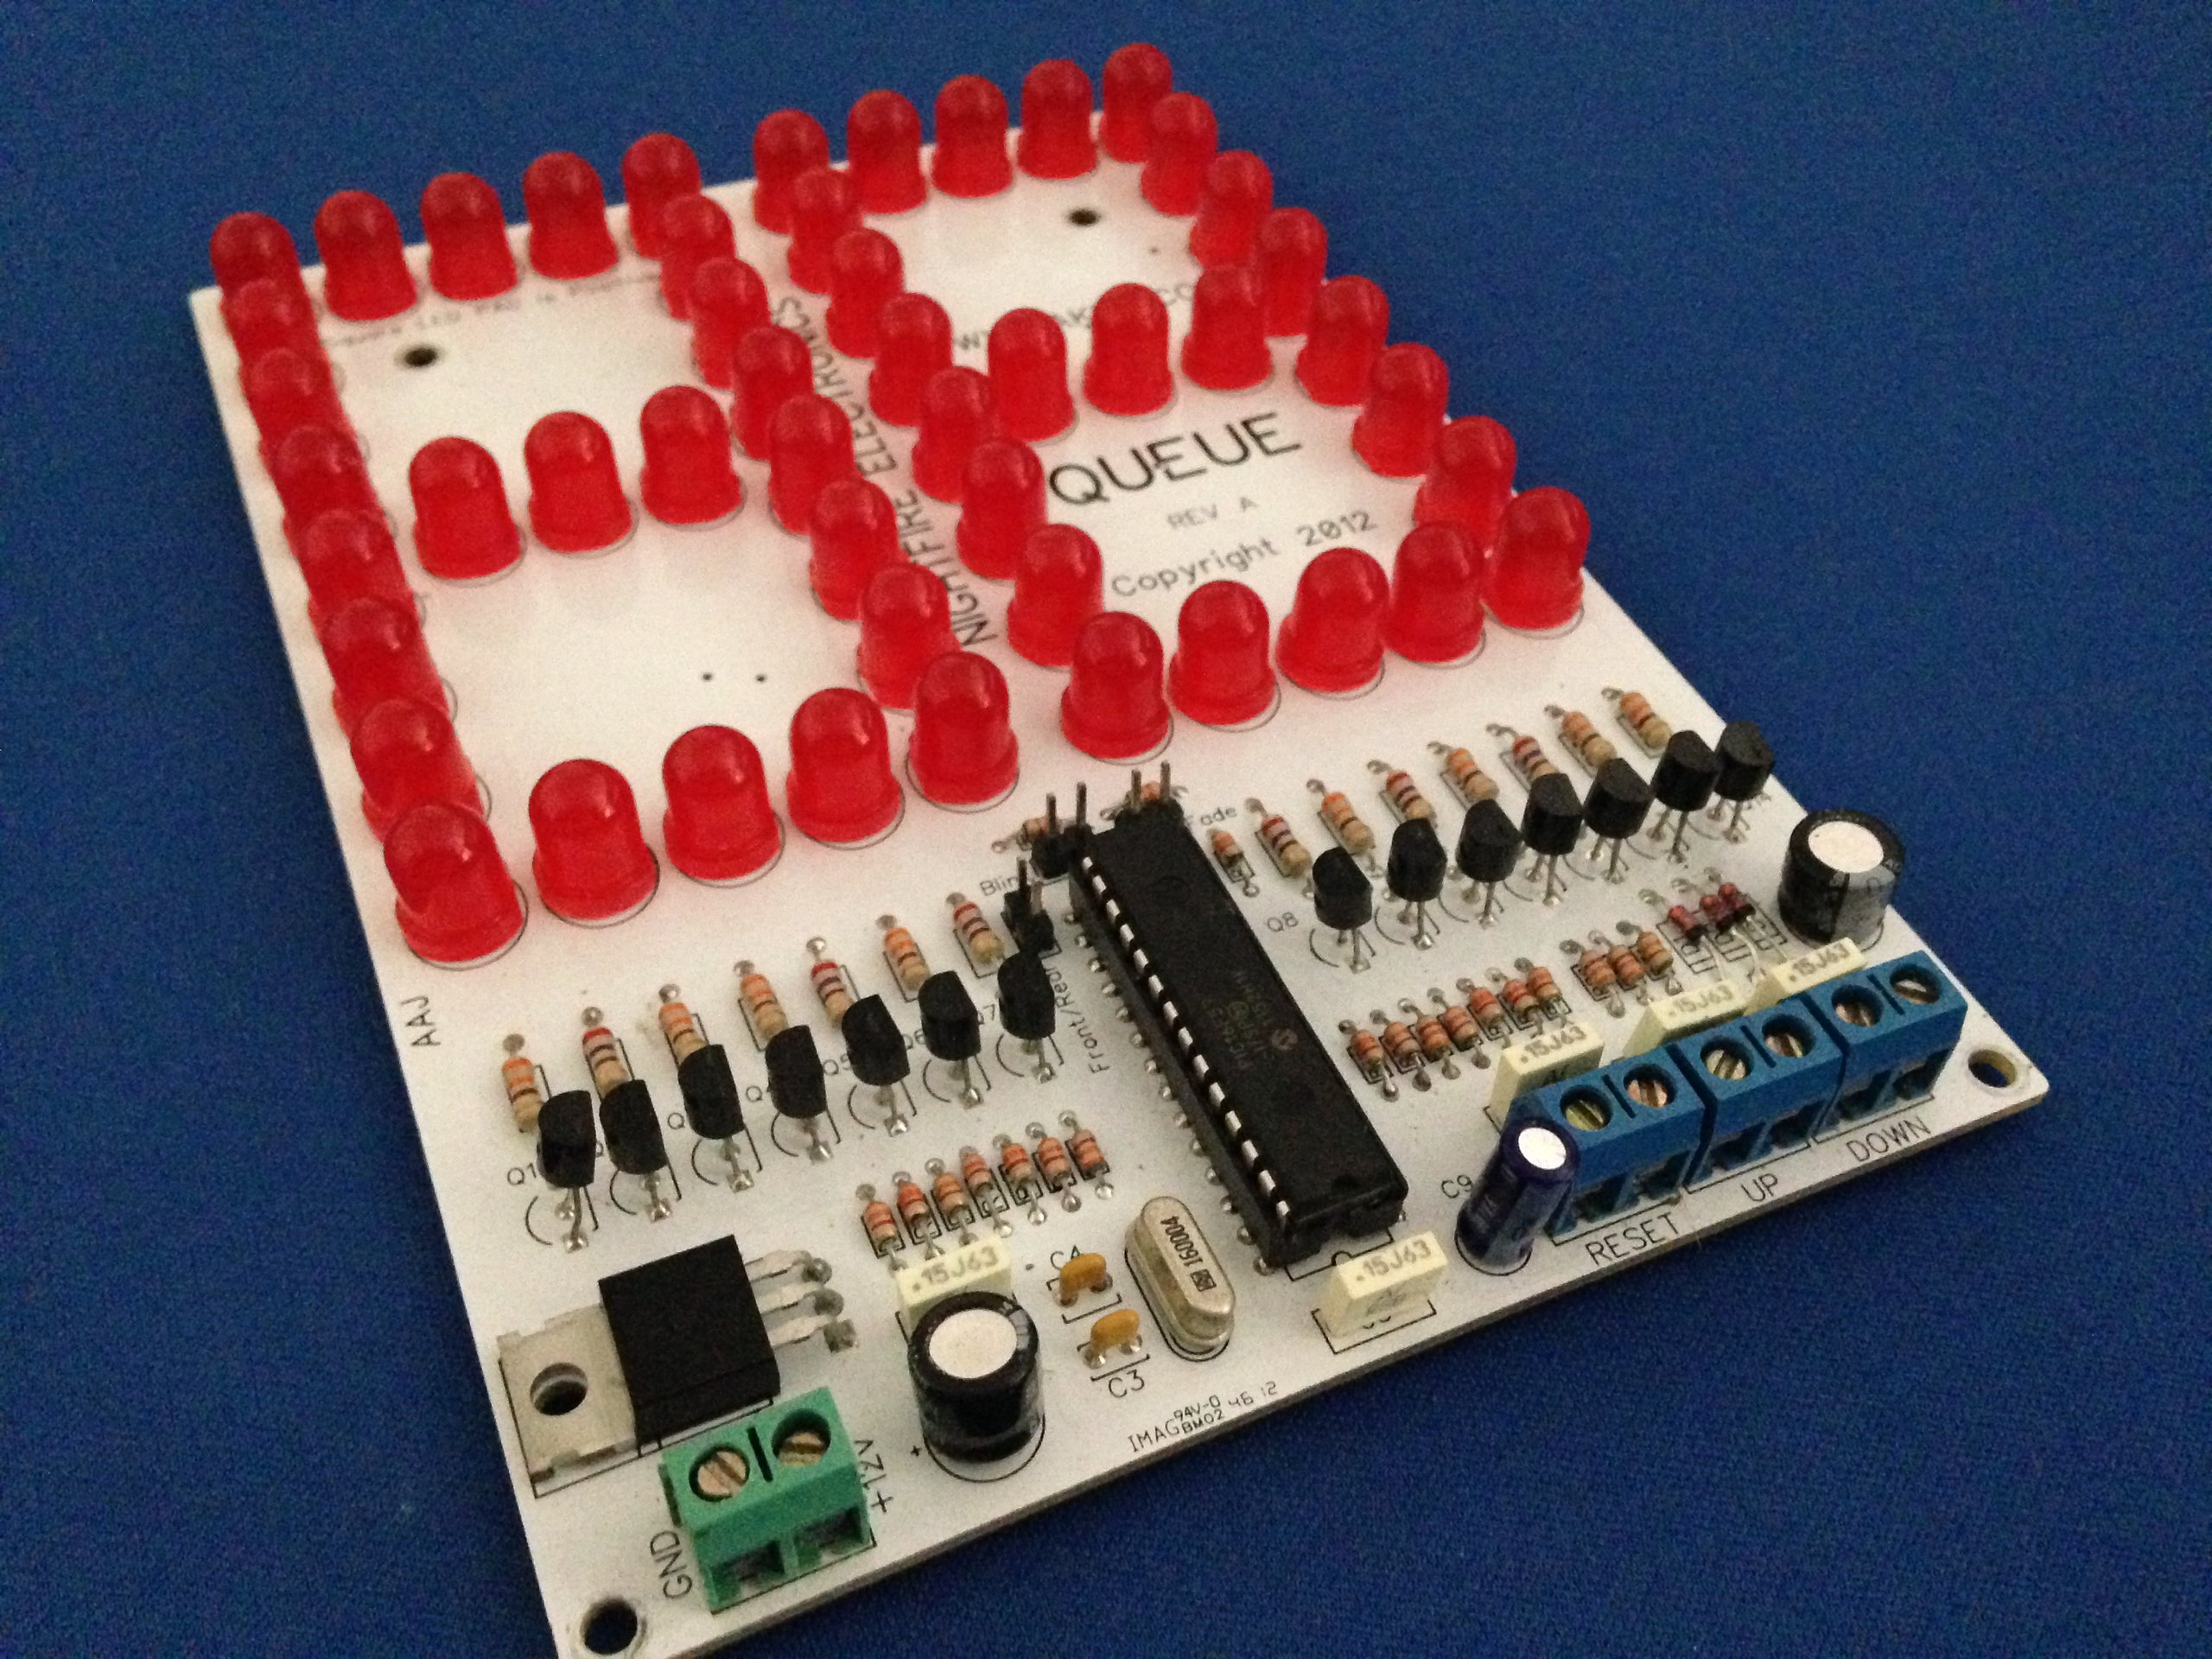 6 led scoreboard kit up down counter kit from nfceramics on tindie. Black Bedroom Furniture Sets. Home Design Ideas